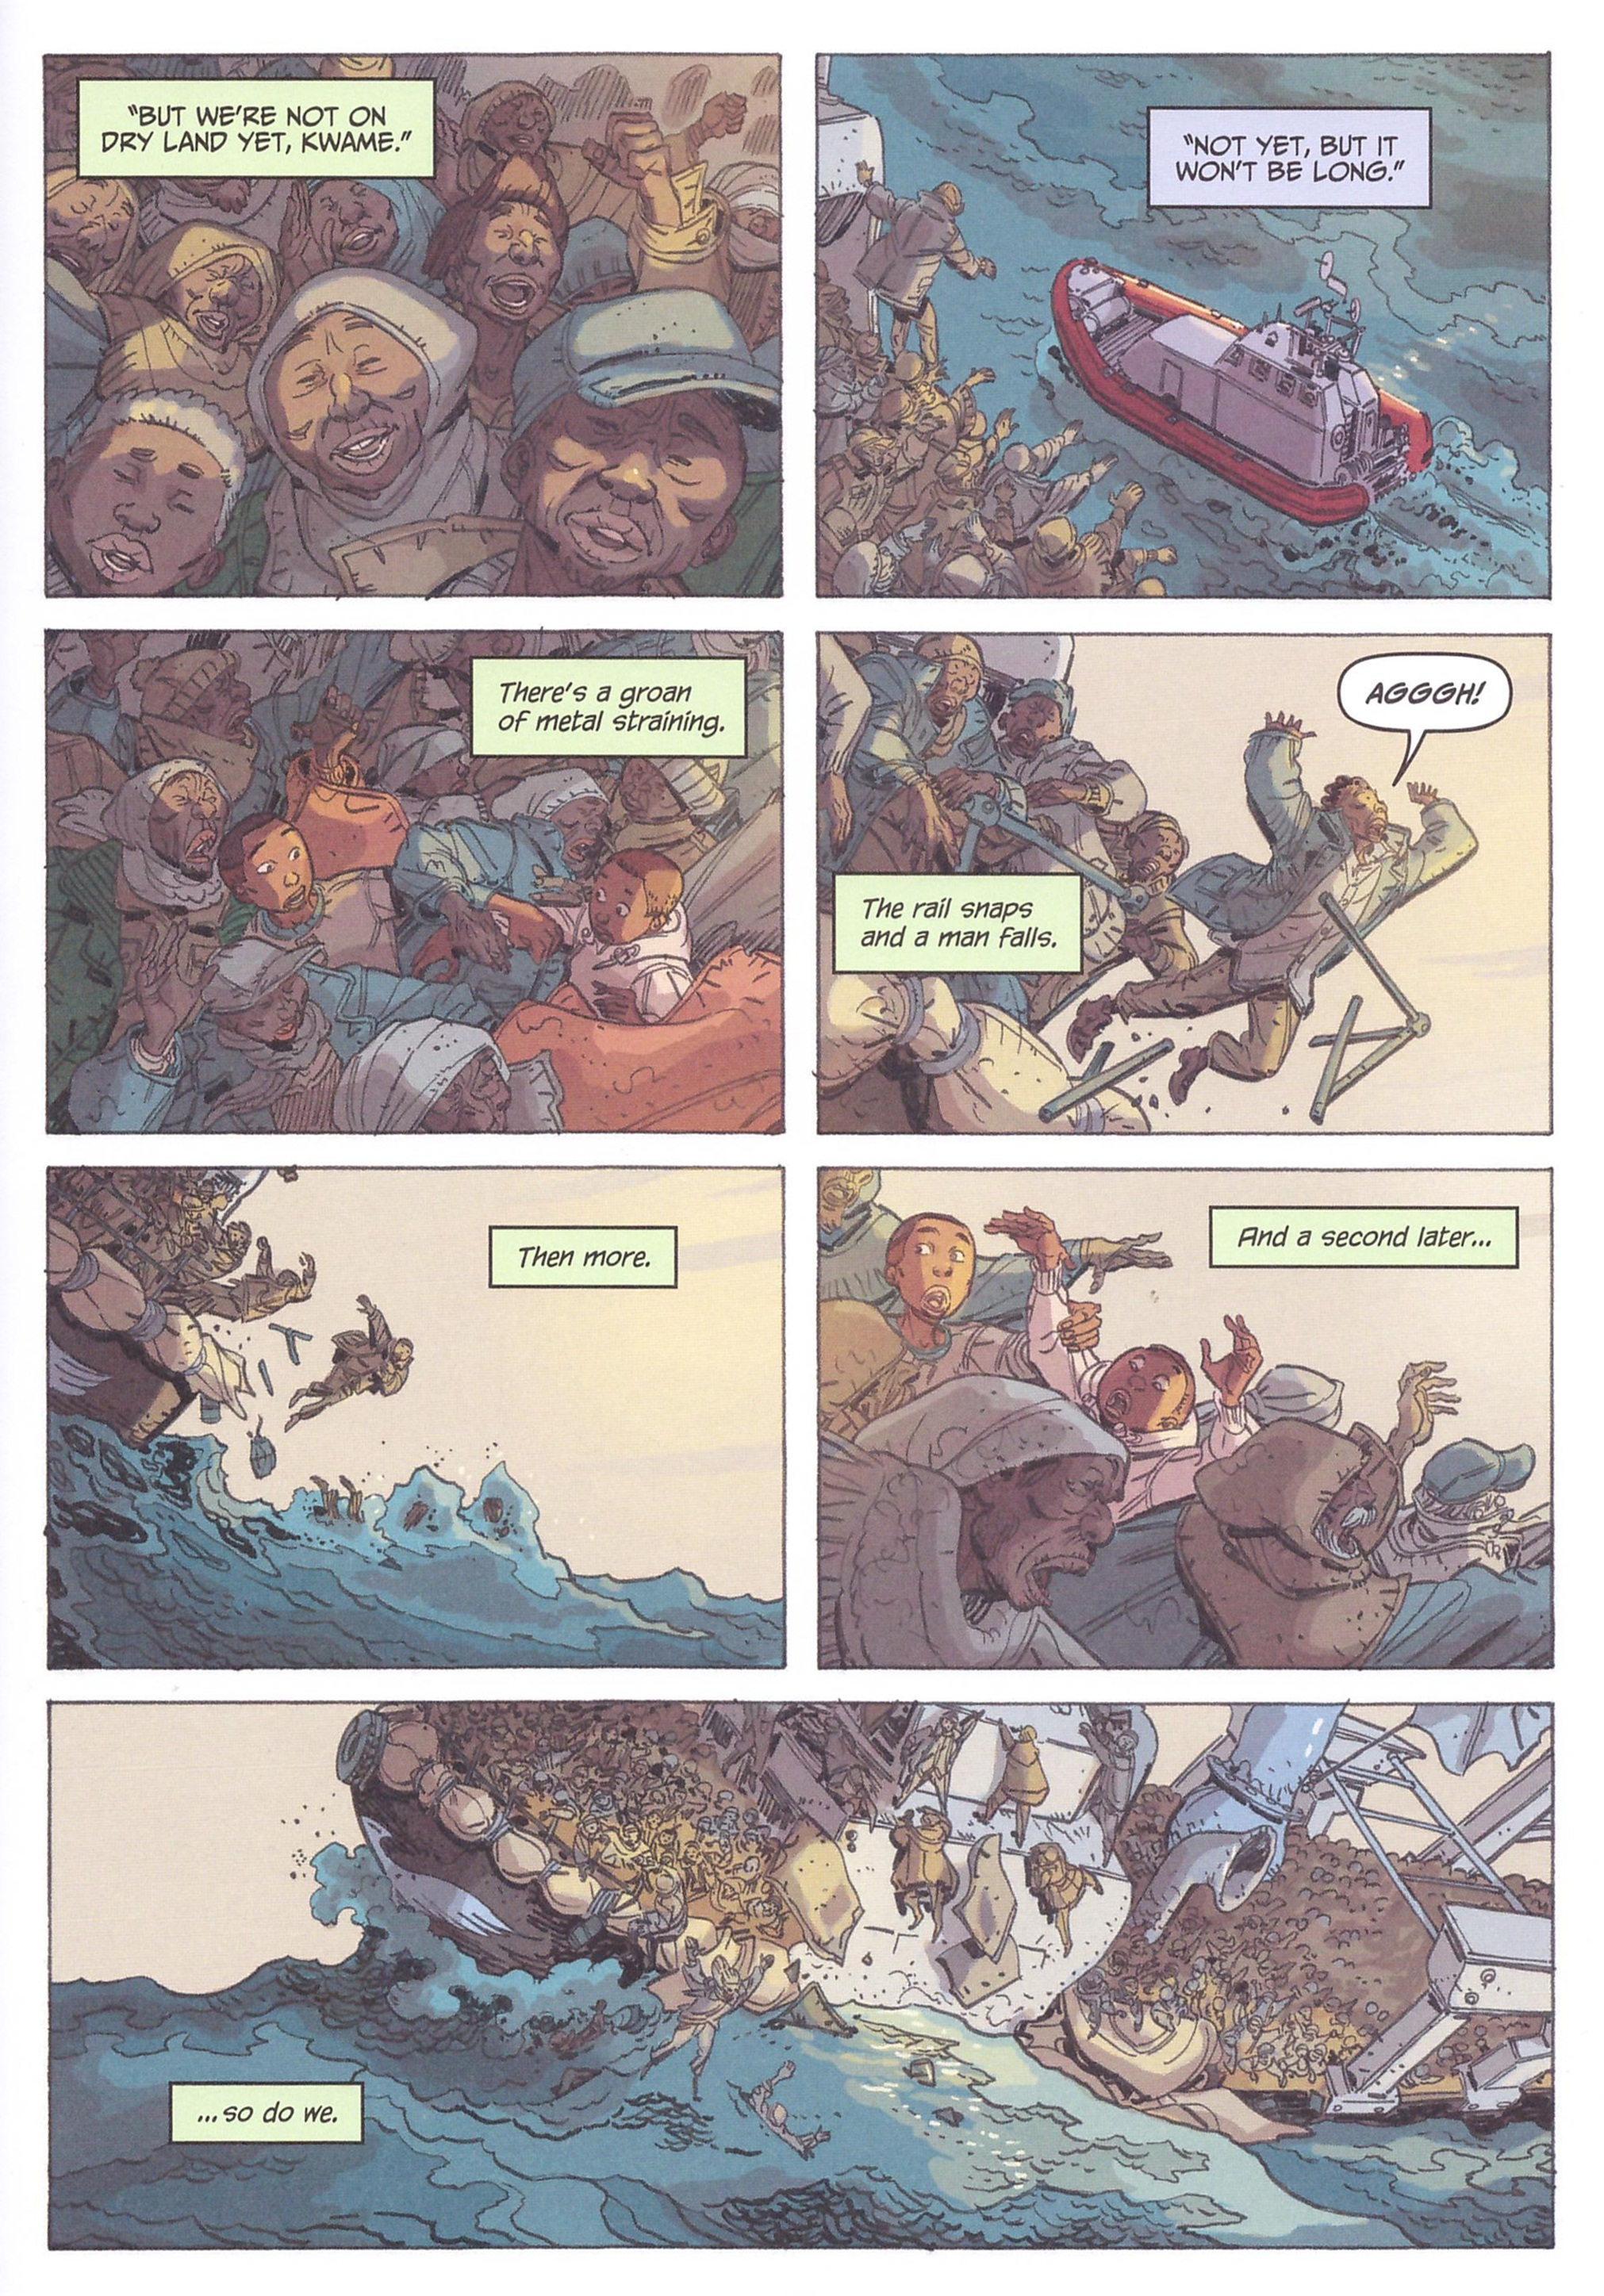 Illegal graphic novel review